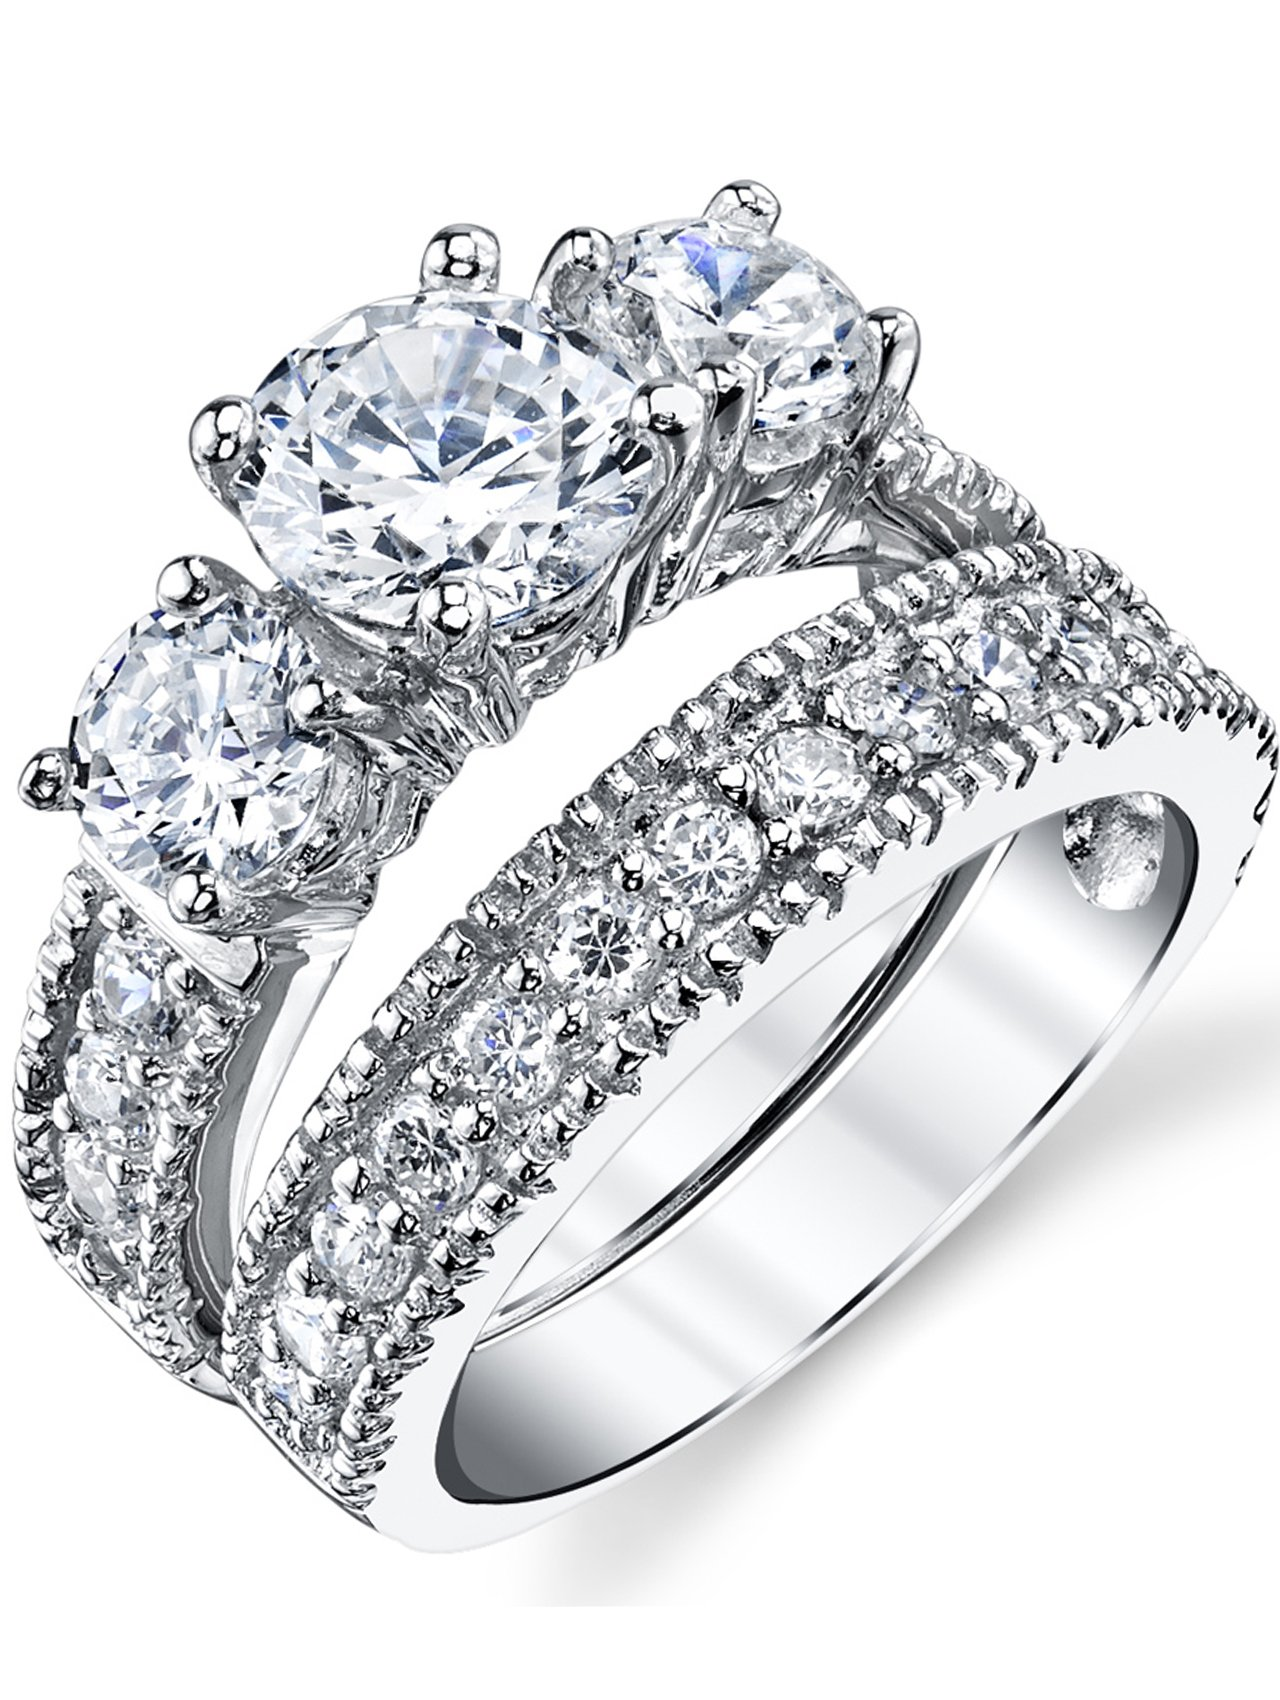 Sterling Silver Past Present Future Bridal Set Engagement Wedding Ring Band W/Cubic Zirconia CZ 6.5